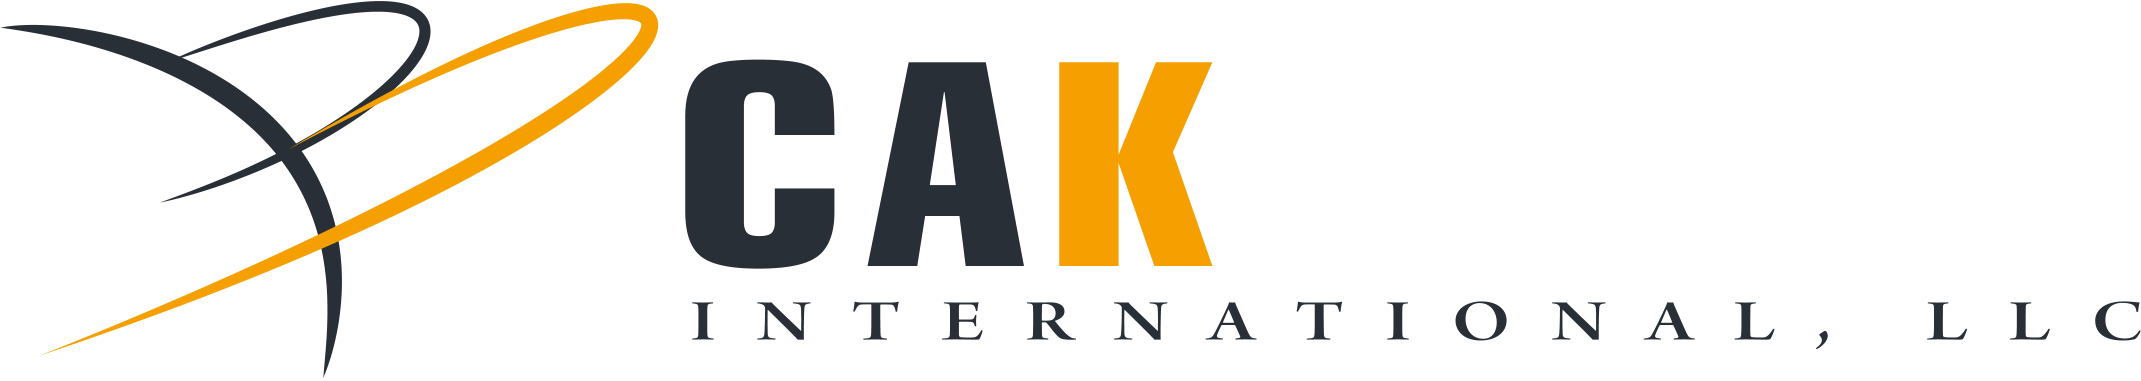 CAK International, LLC